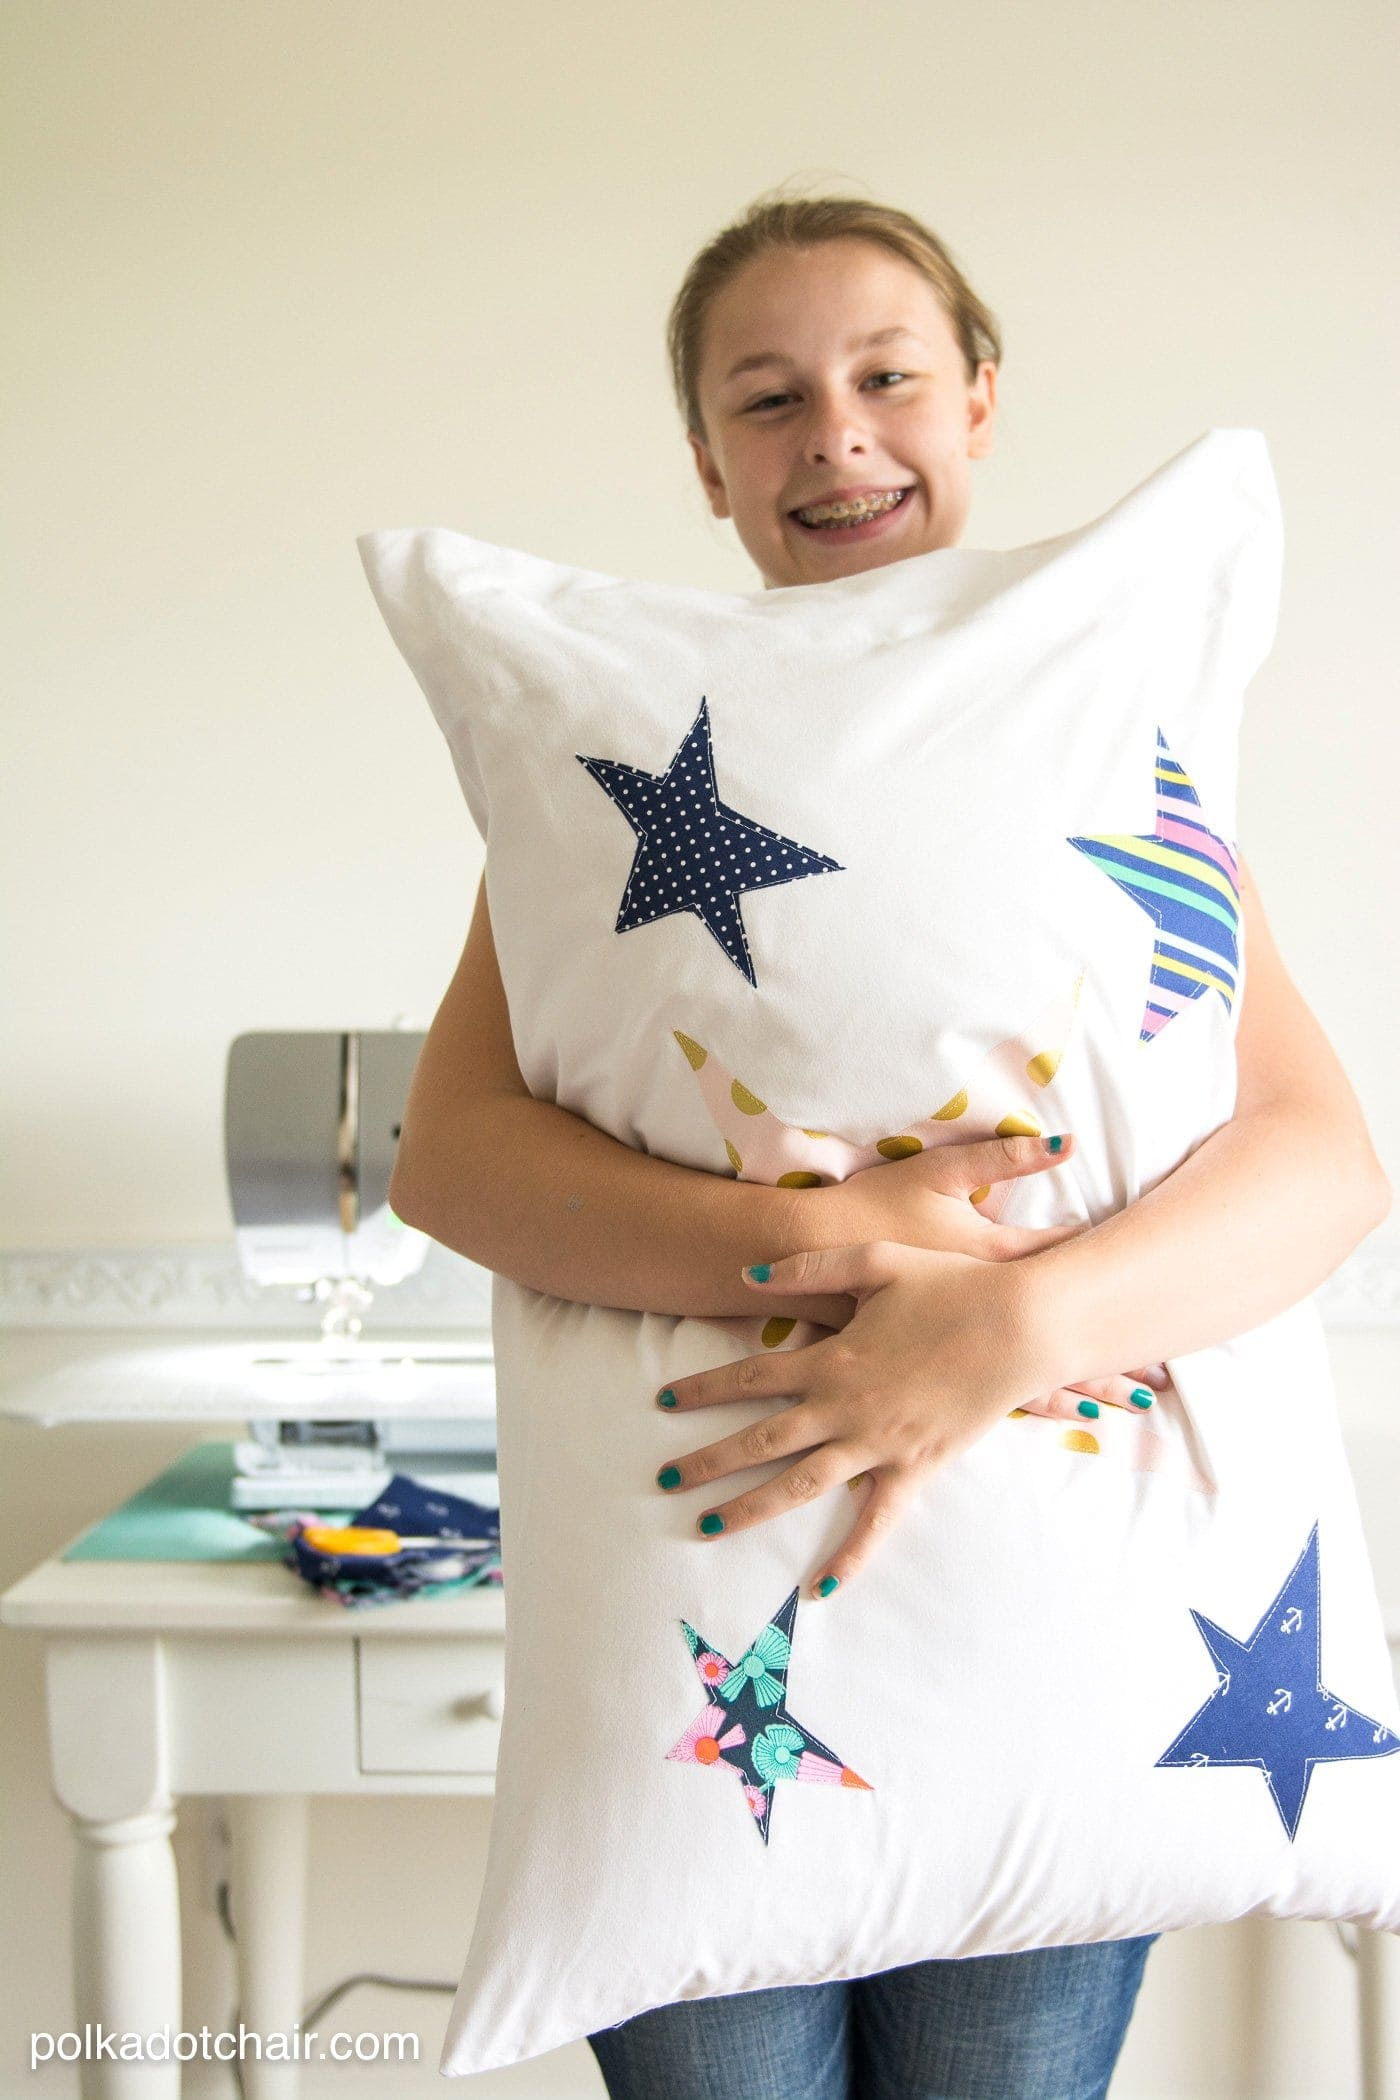 Sewing Projects for Kids a Pillowcase Project